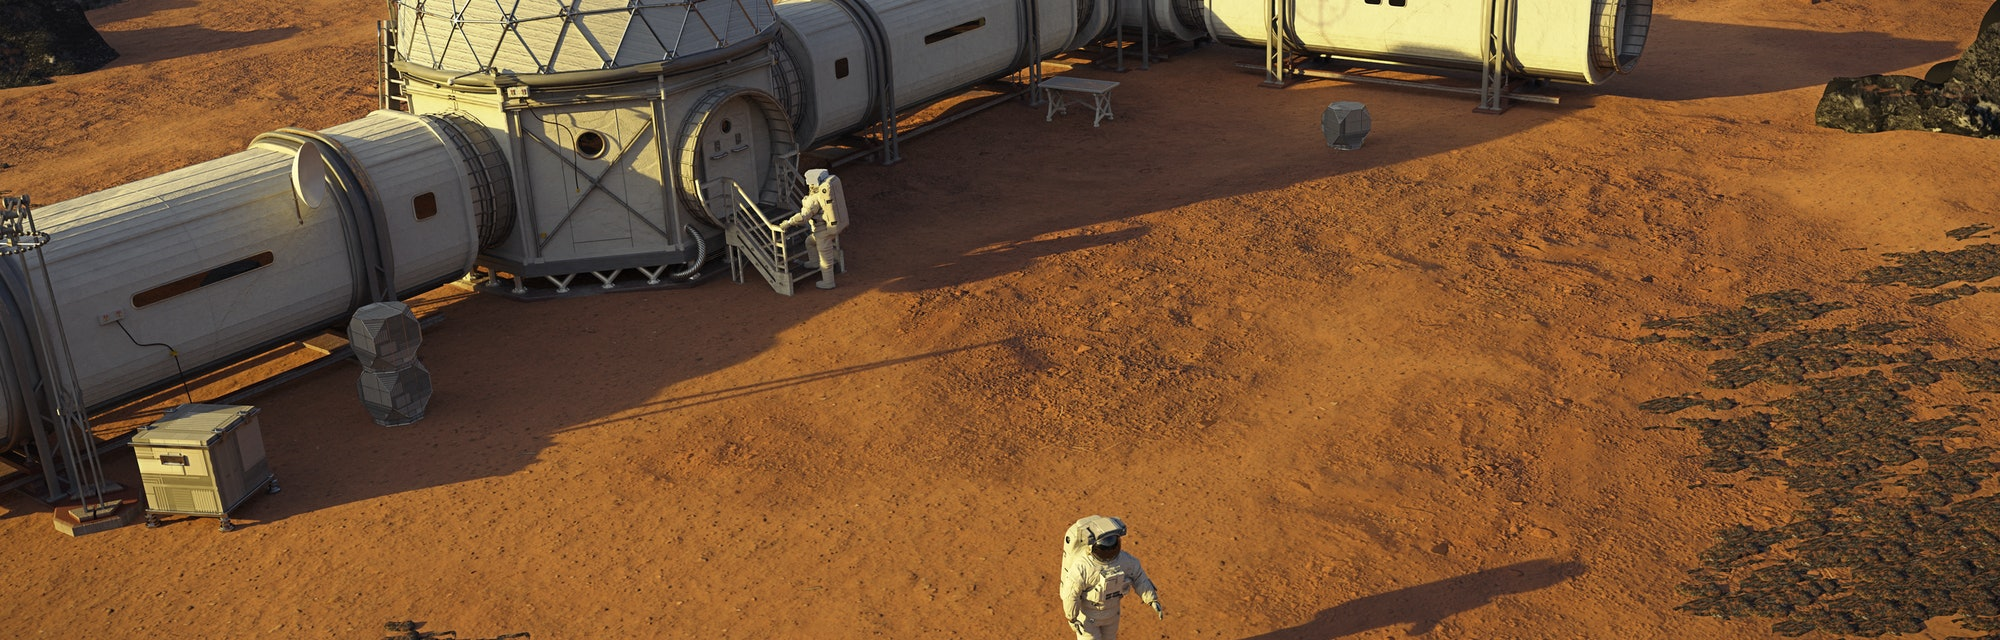 Mars base with astronauts, station on the surface of the red planet (3d science rendering)